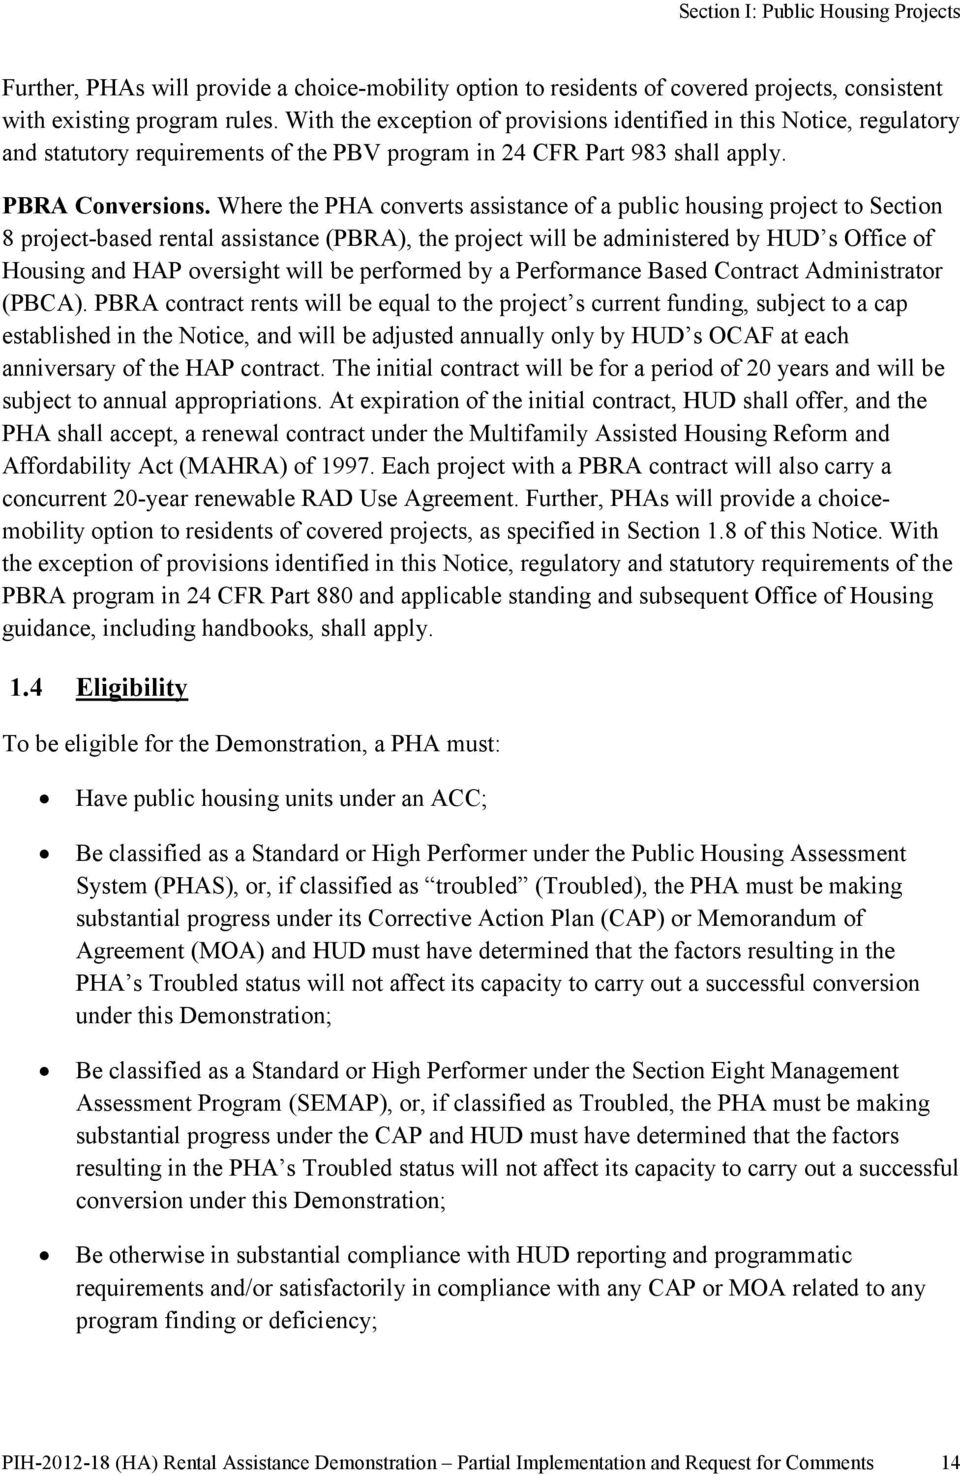 Where the PHA converts assistance of a public housing project to Section 8 project-based rental assistance (PBRA), the project will be administered by HUD s Office of Housing and HAP oversight will